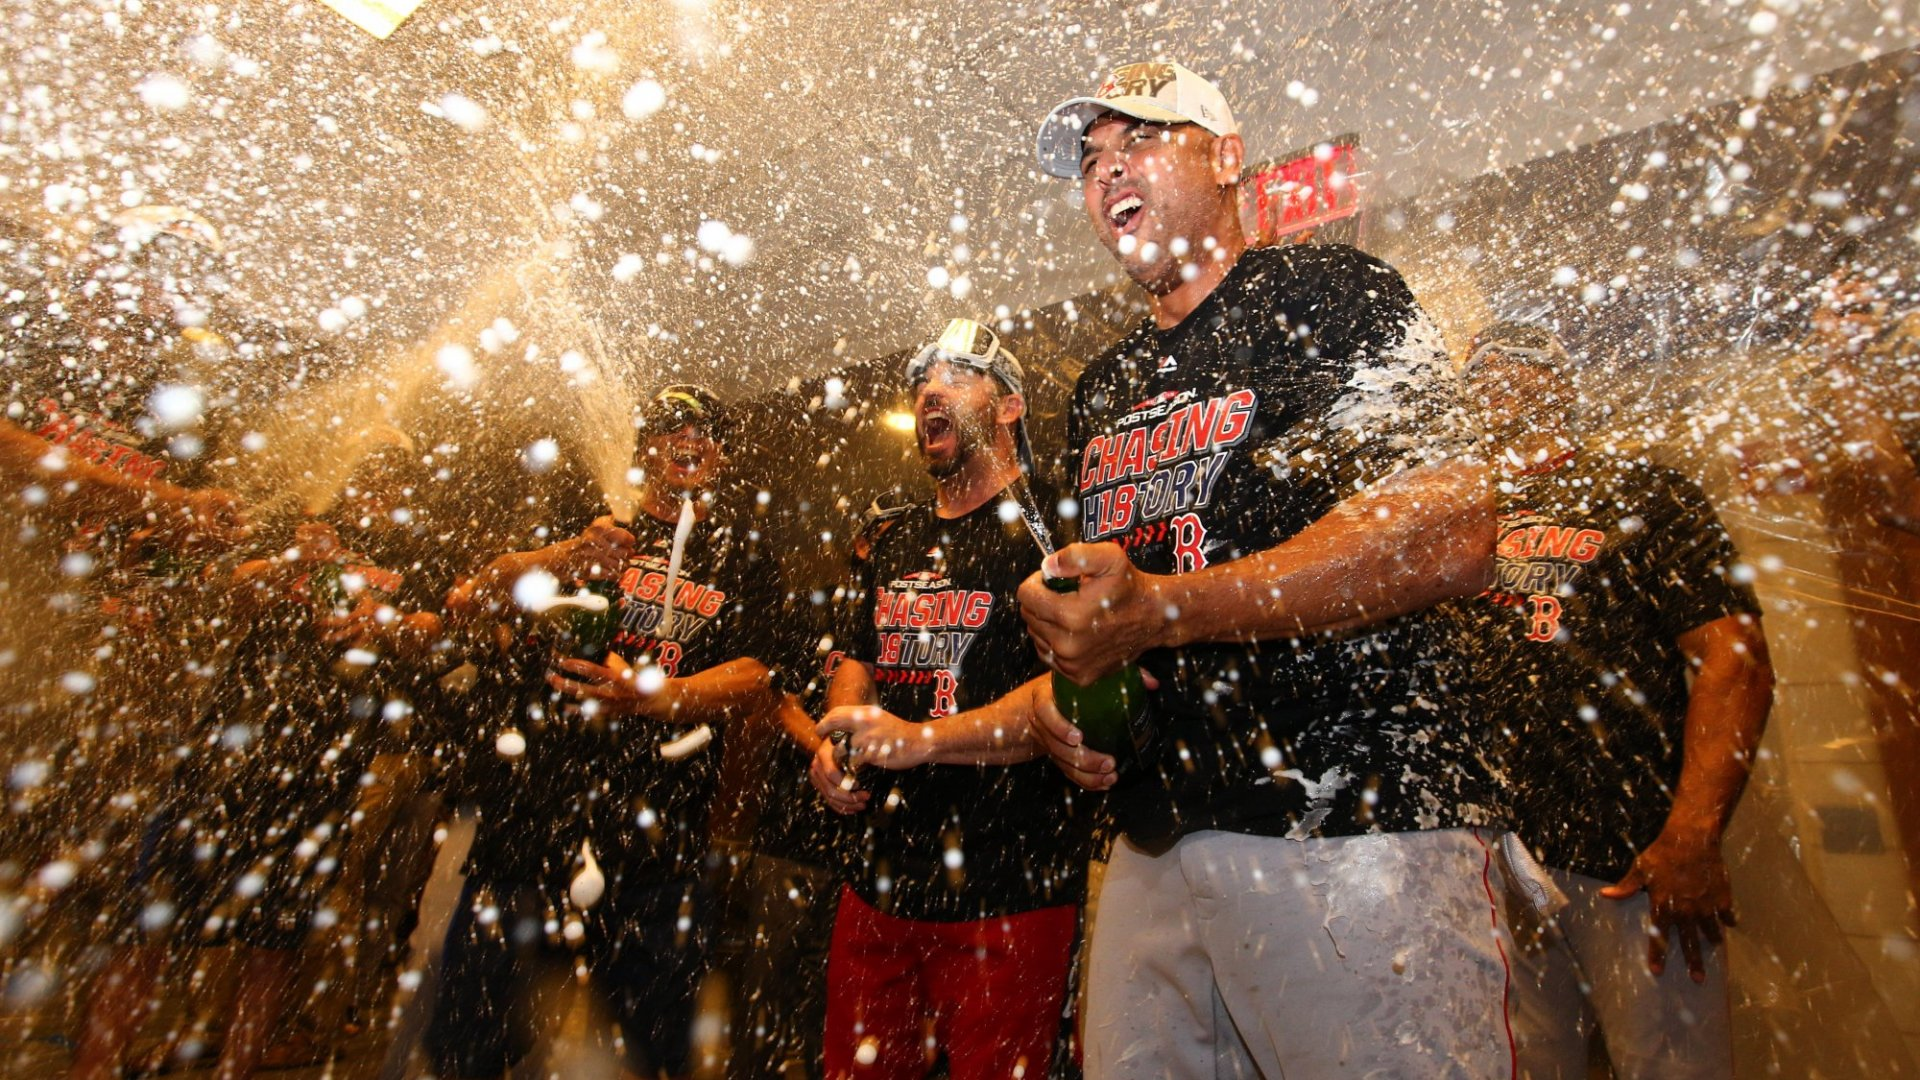 How Alex Cora Forged a Winning Culture that Took the Boston Red Sox to the World Series